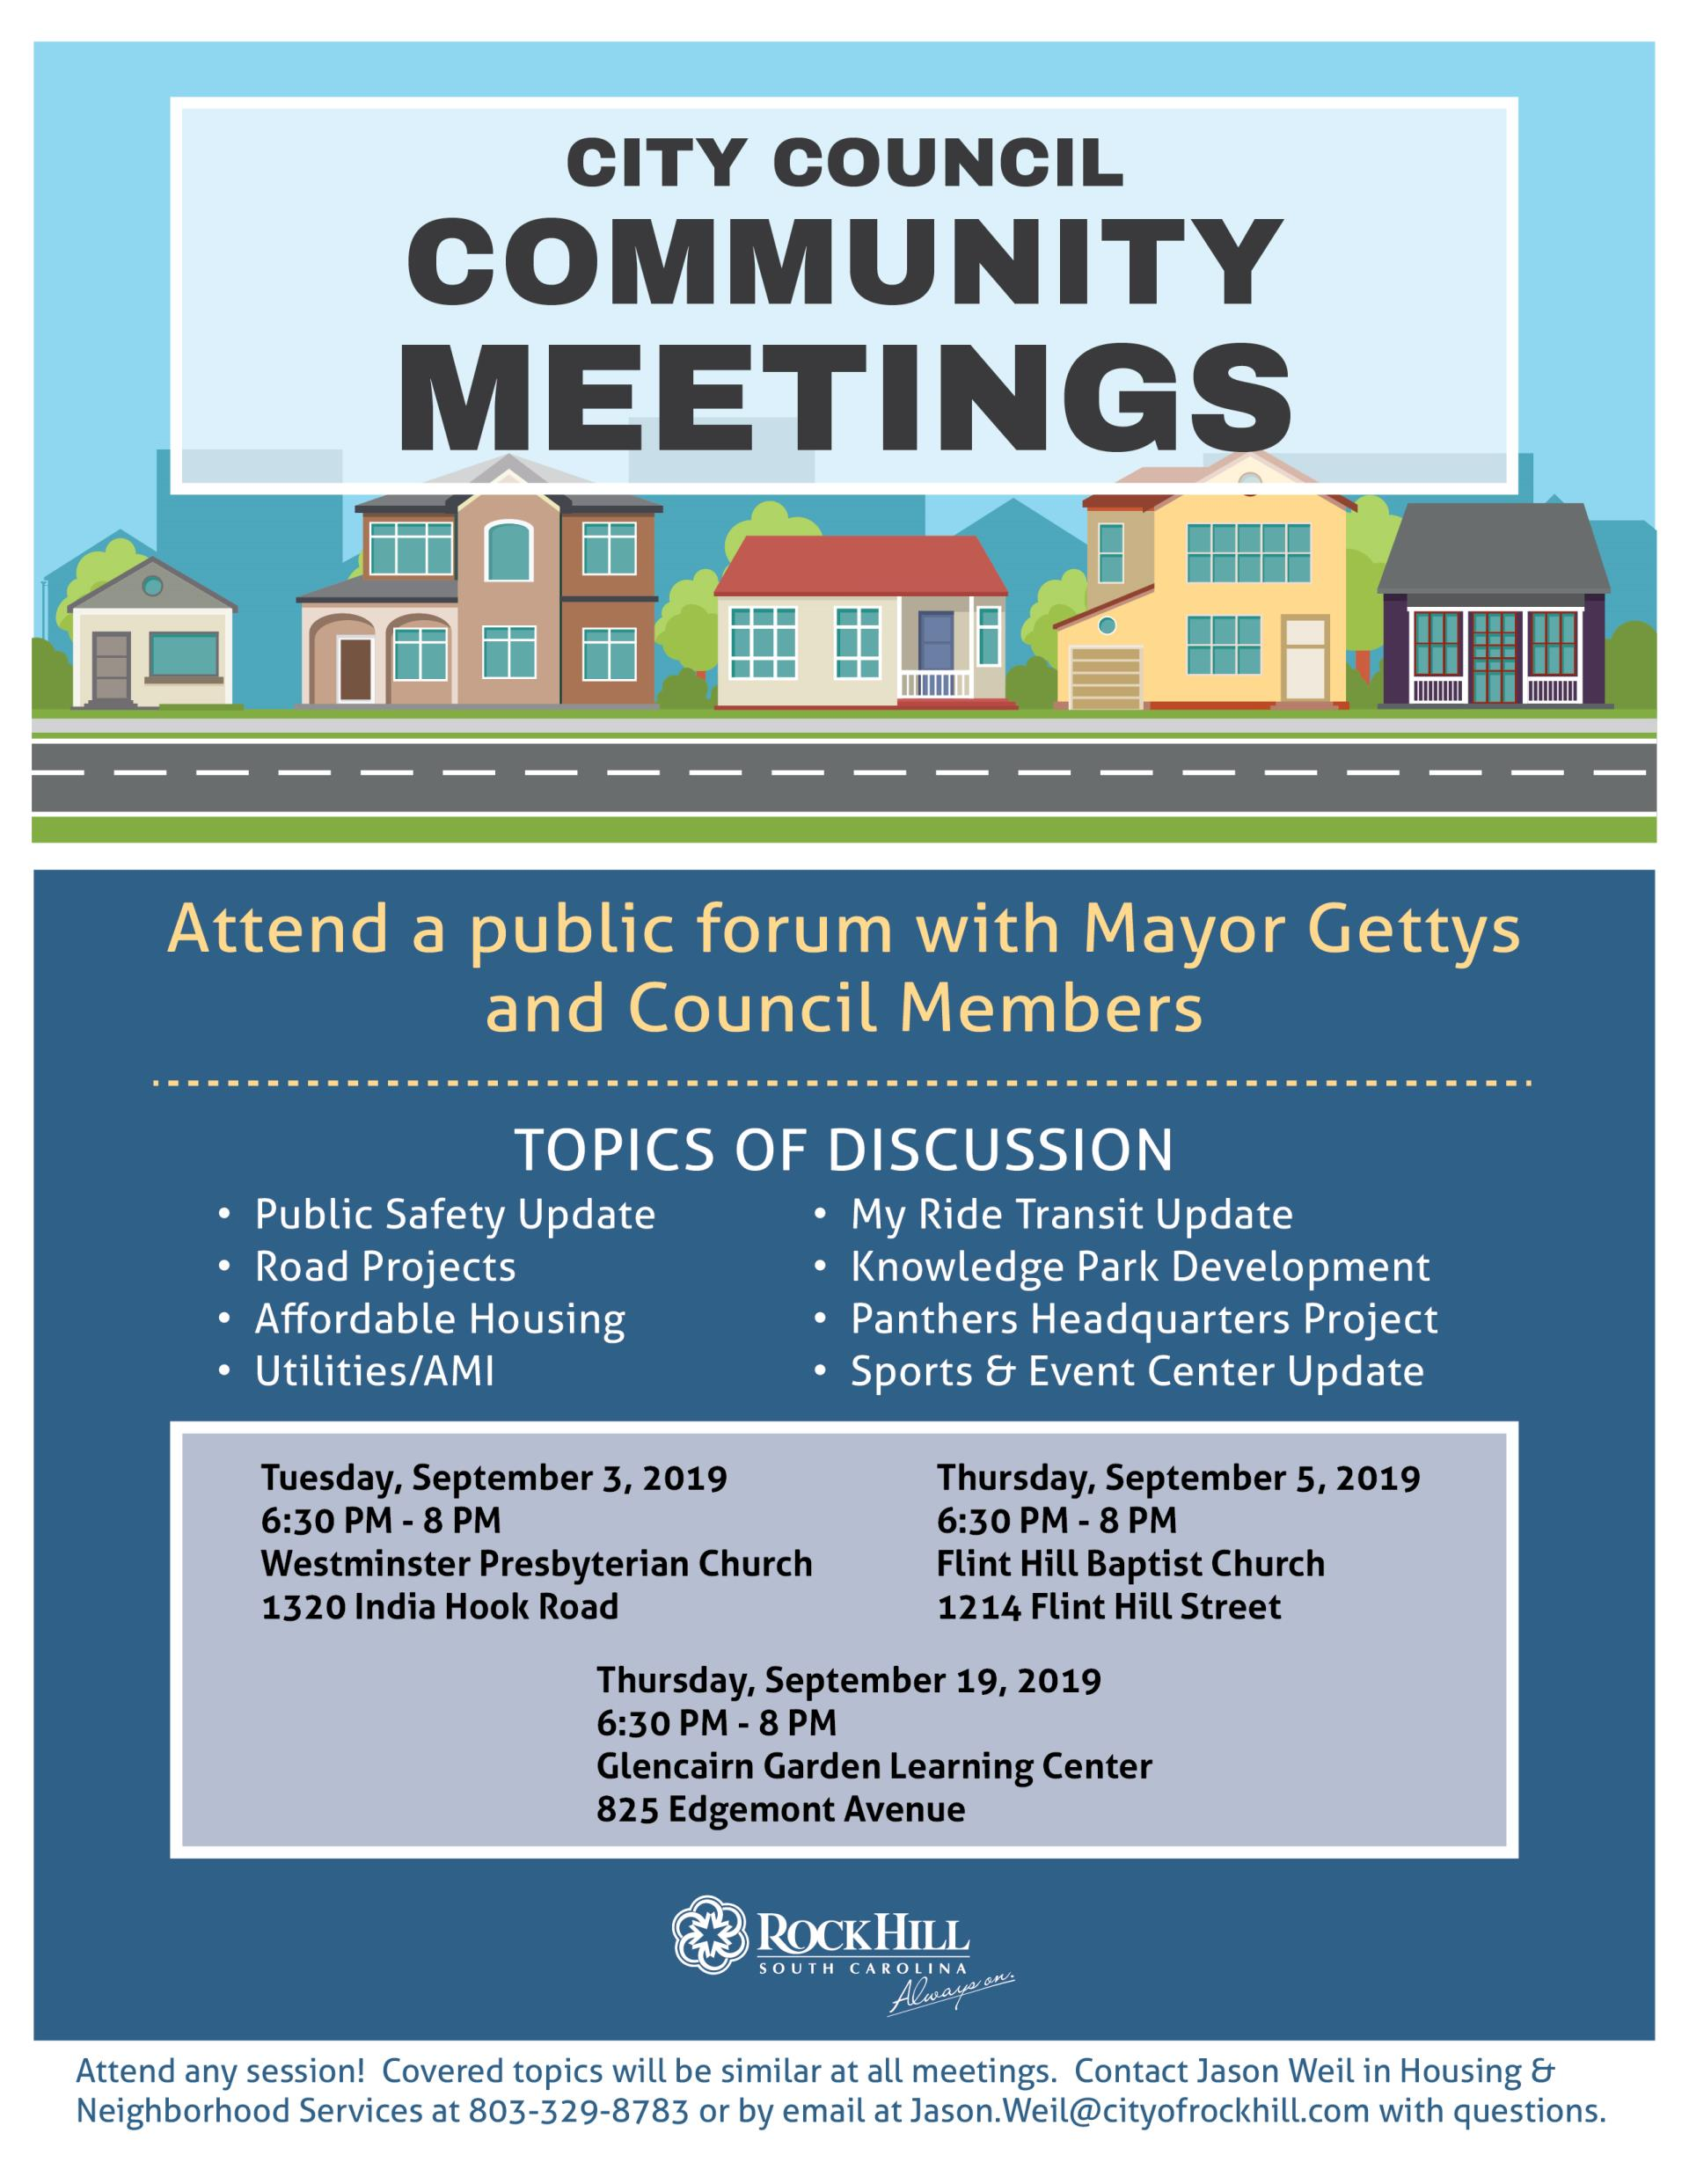 2019 City Council Community Meetings